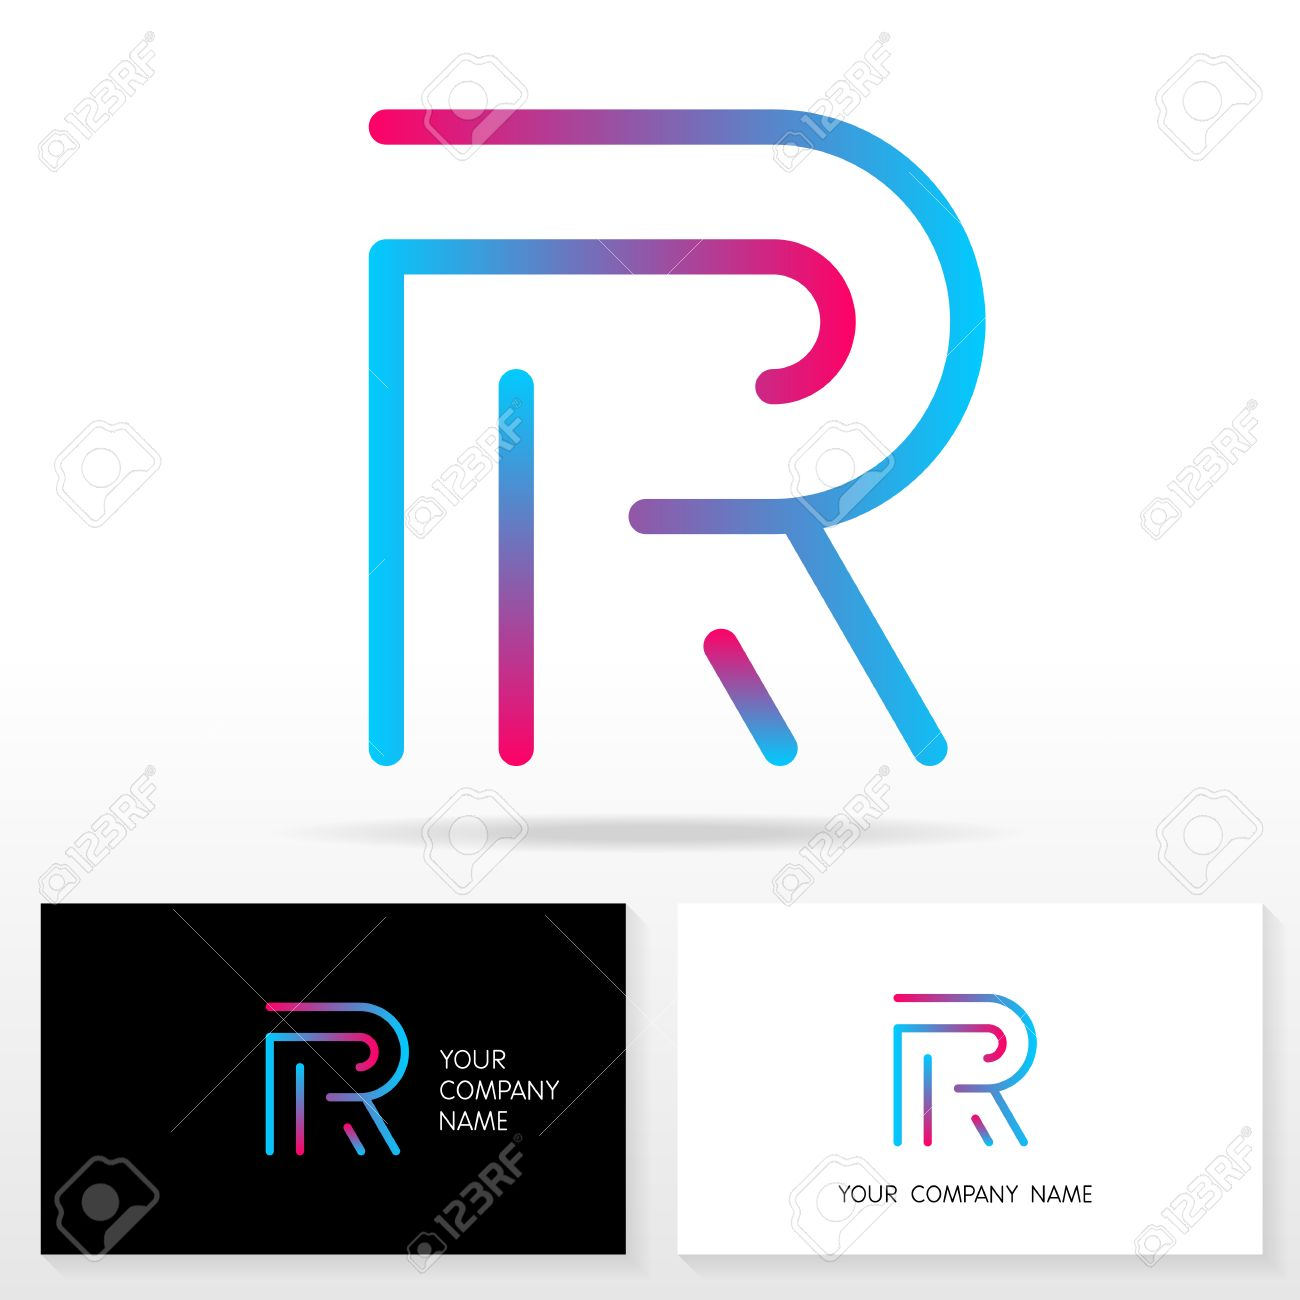 Letter r logo design vector sign stock vector business card letter r logo design vector sign stock vector business card templates stock vector spiritdancerdesigns Image collections